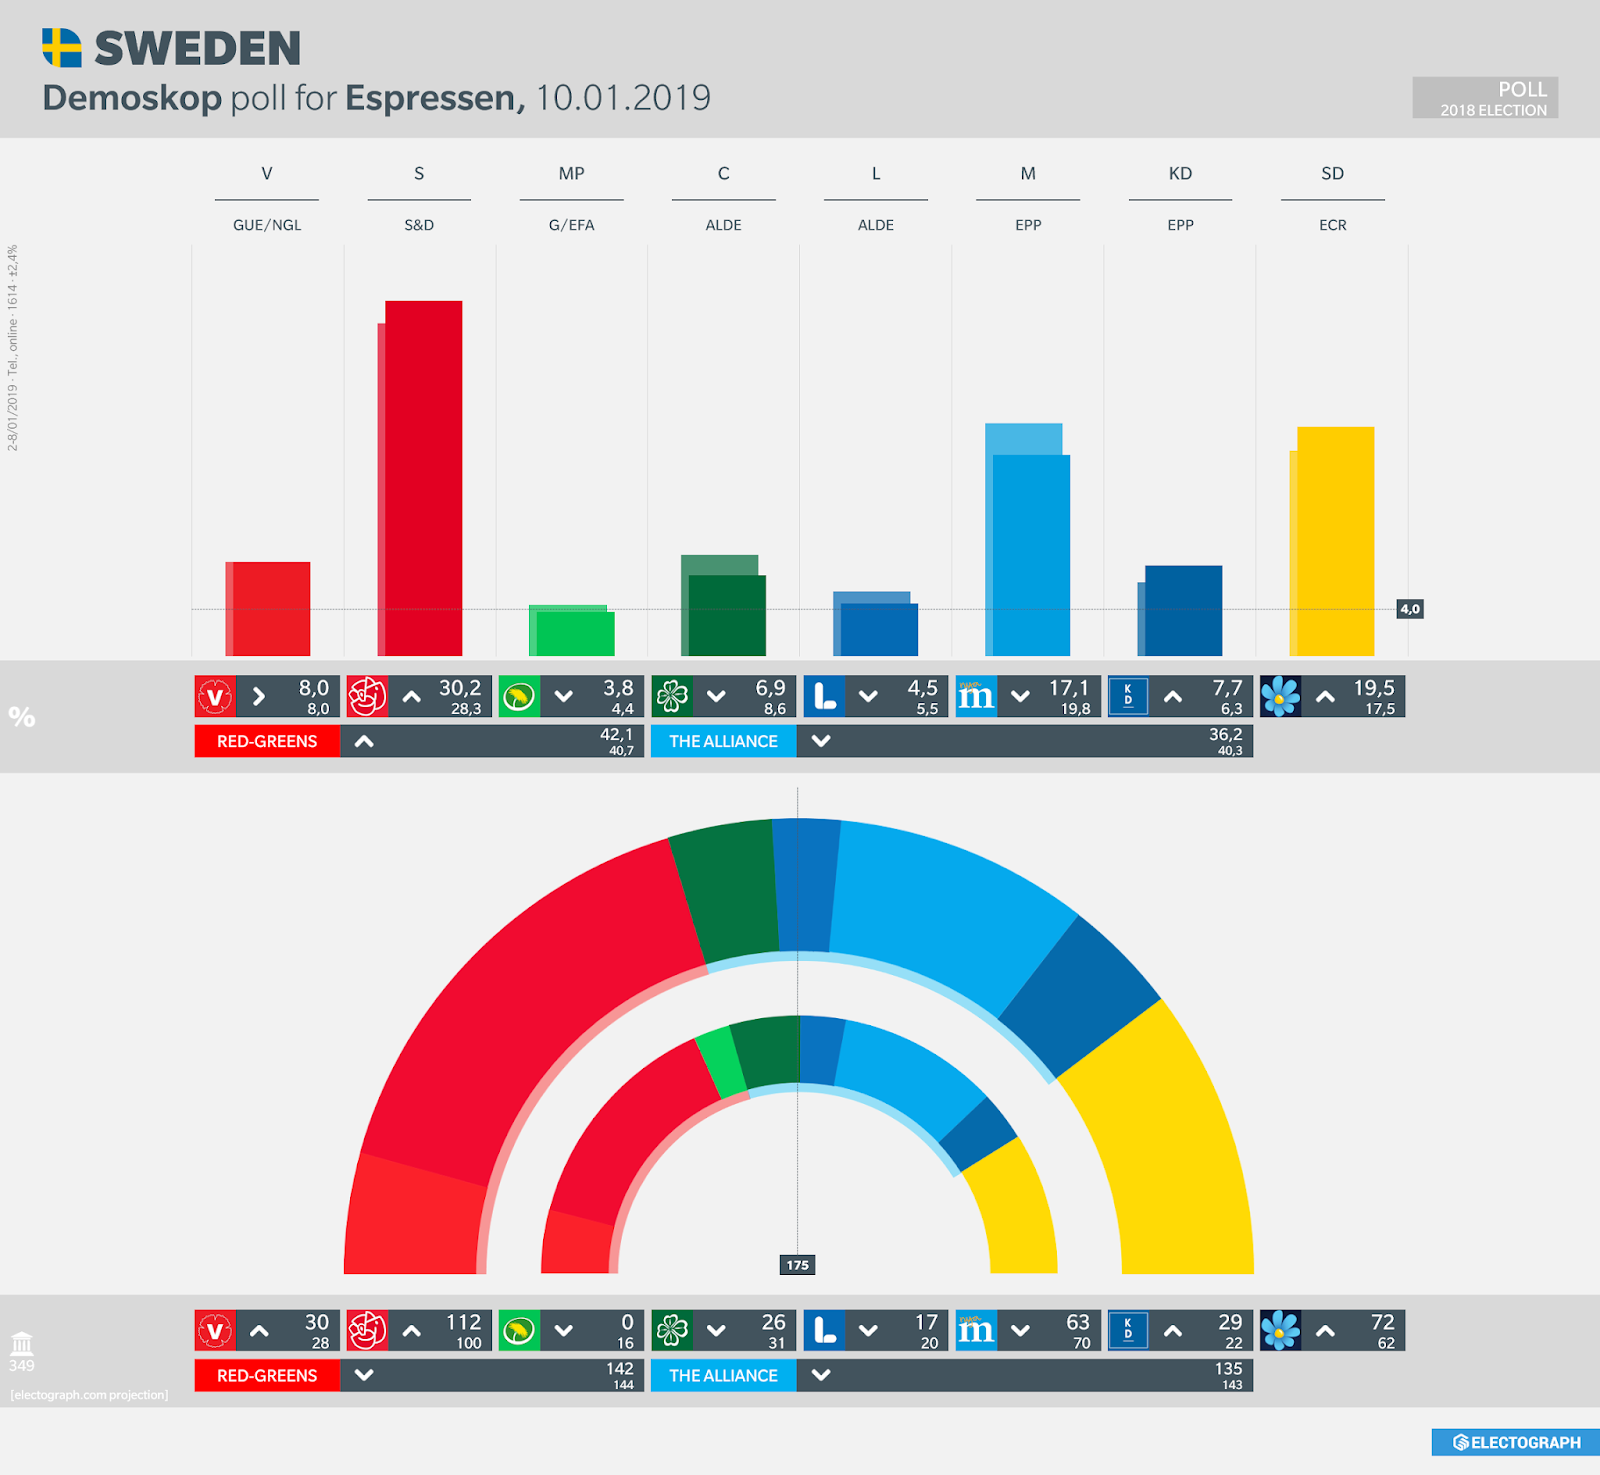 SWEDEN: Demoskop poll chart for Expressen, 10 January 2019